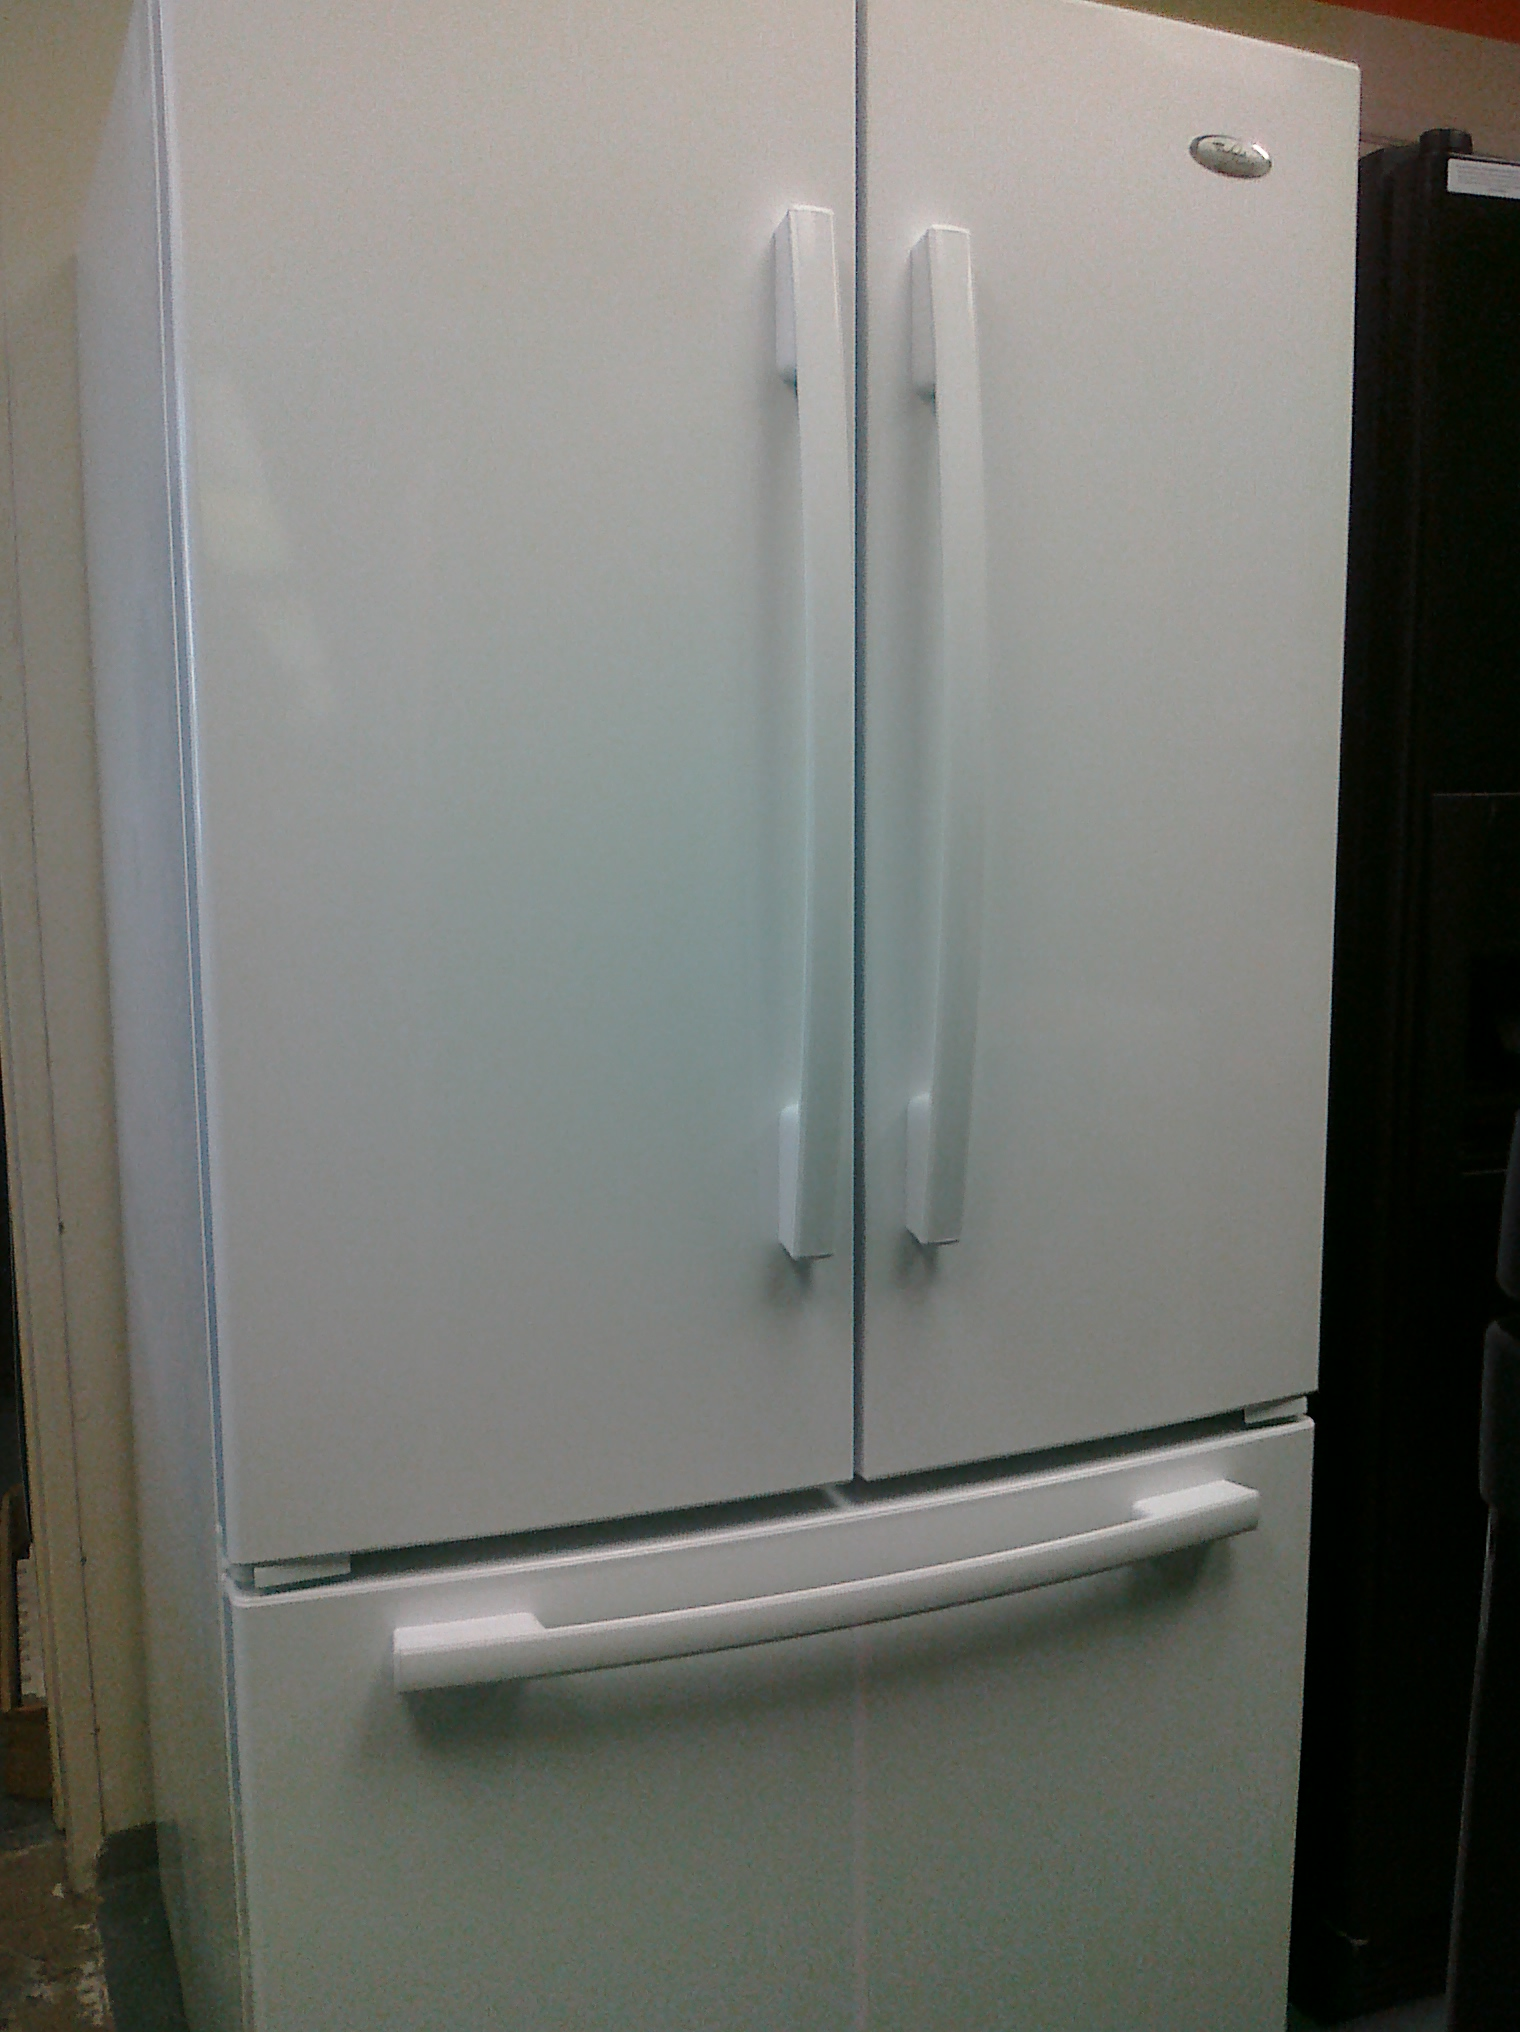 white french door refrigerator. Whirlpool GX5SHDXVQ White French Door Refrigerator T